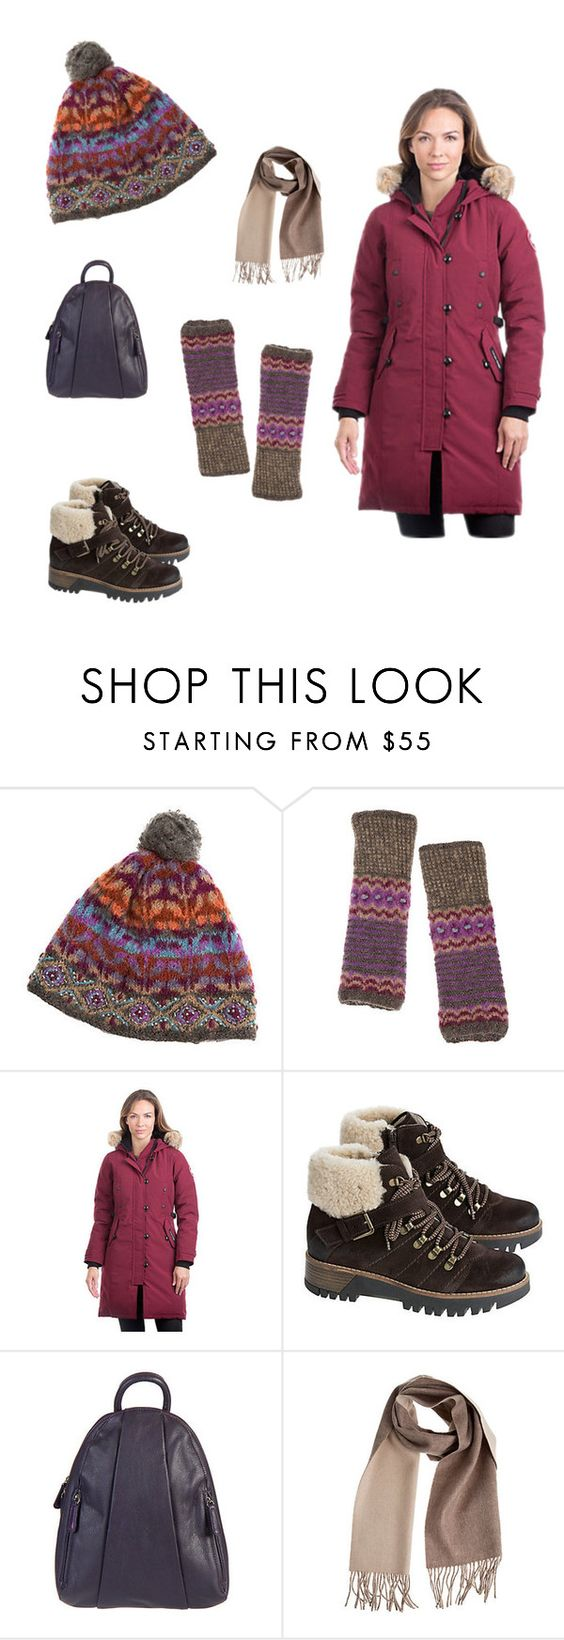 """The Kensignton-Get the Look! www.overland.com"" by shopoverland ❤ liked on Polyvore featuring Overland Sheepskin Co., Canada Goose and Bos. & Co."